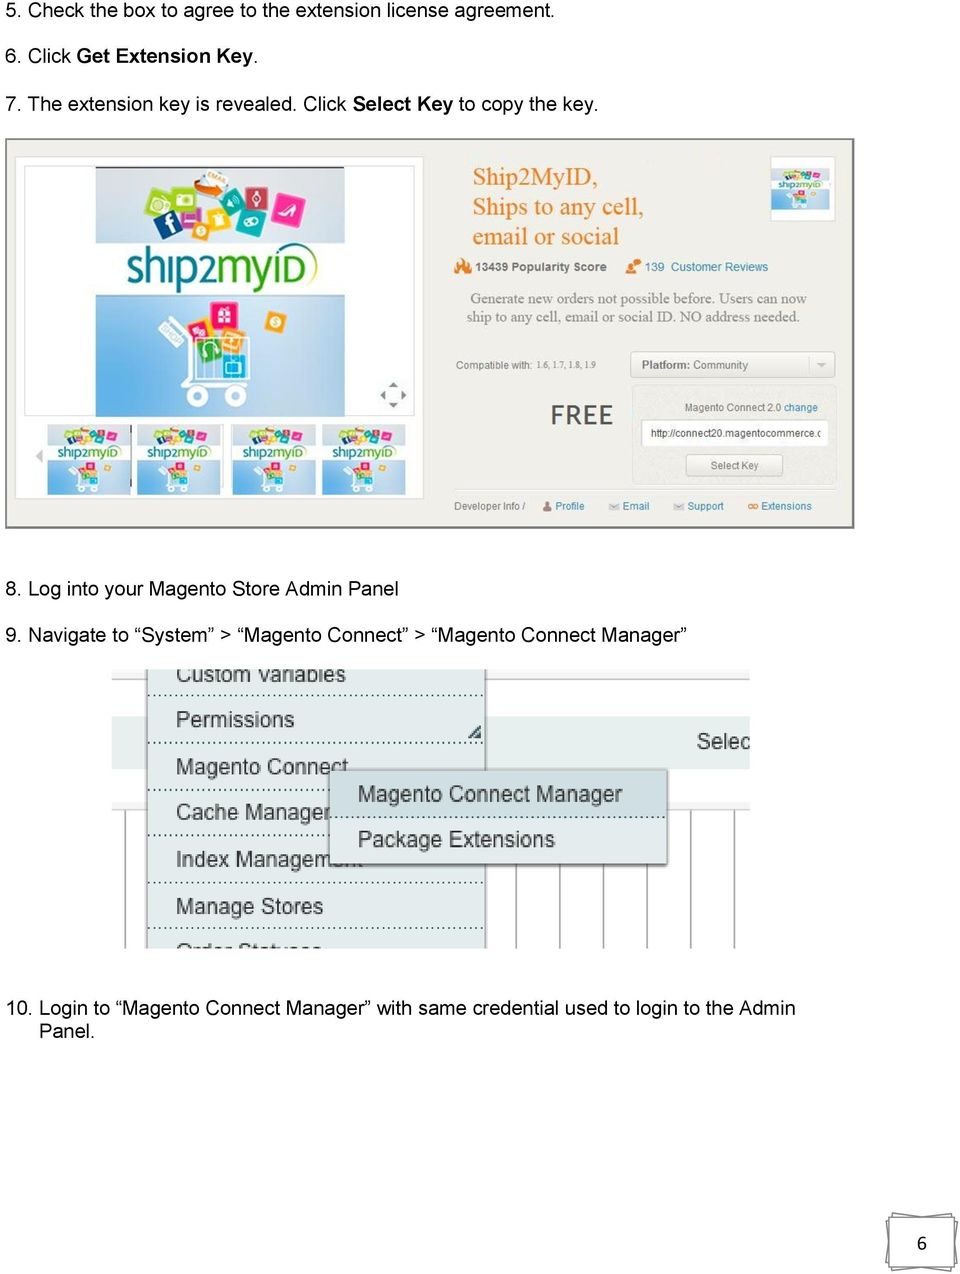 how to use magento connect manager